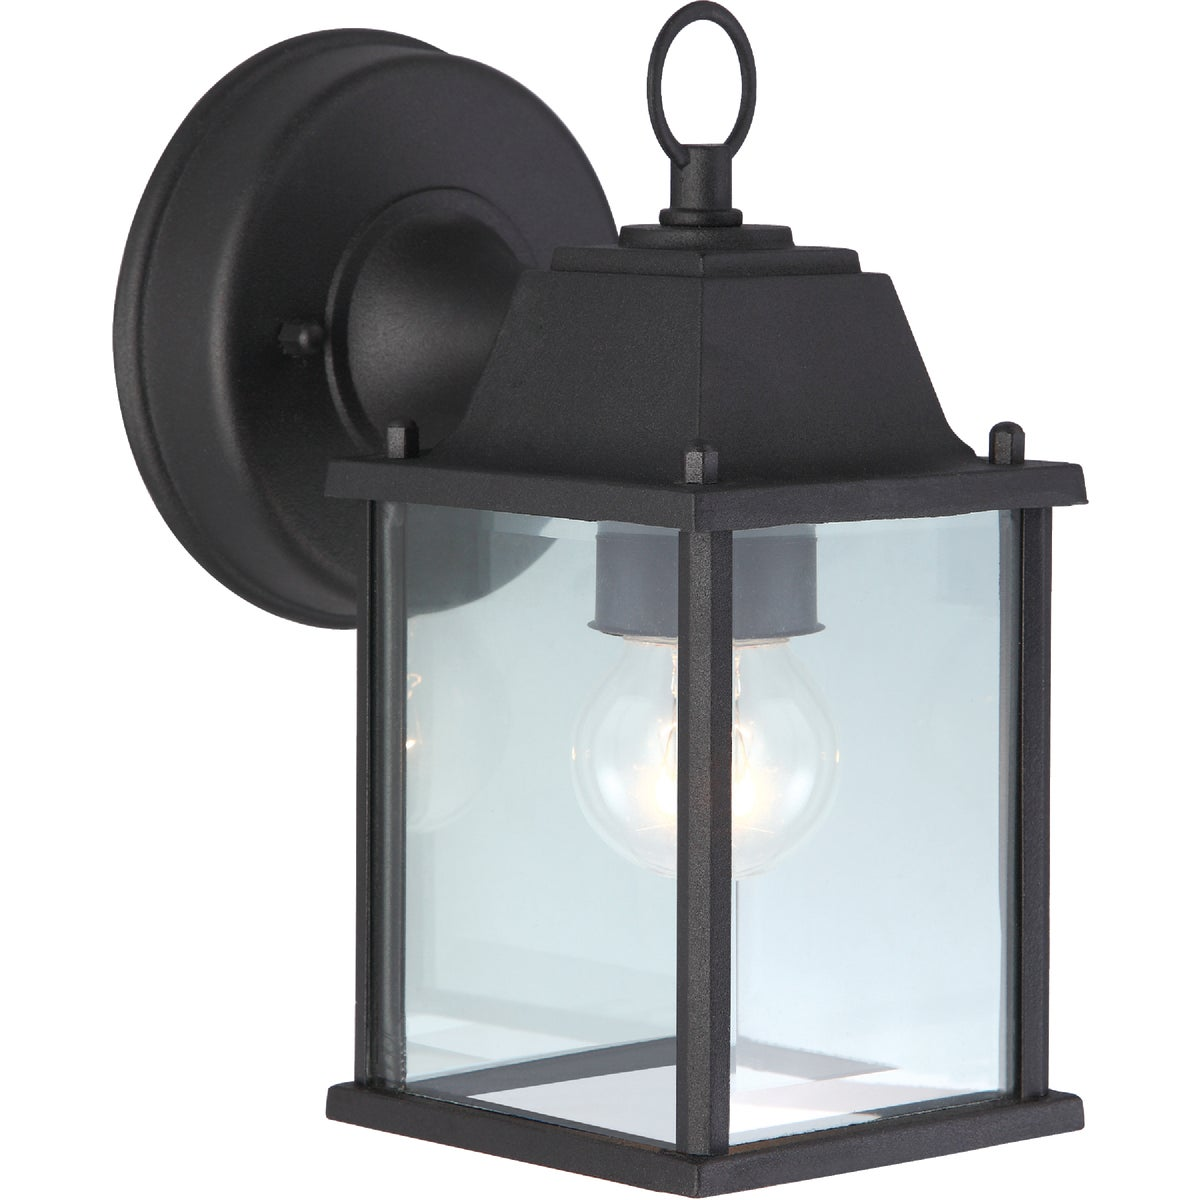 BLK OUTDOOR WALL FIXTURE